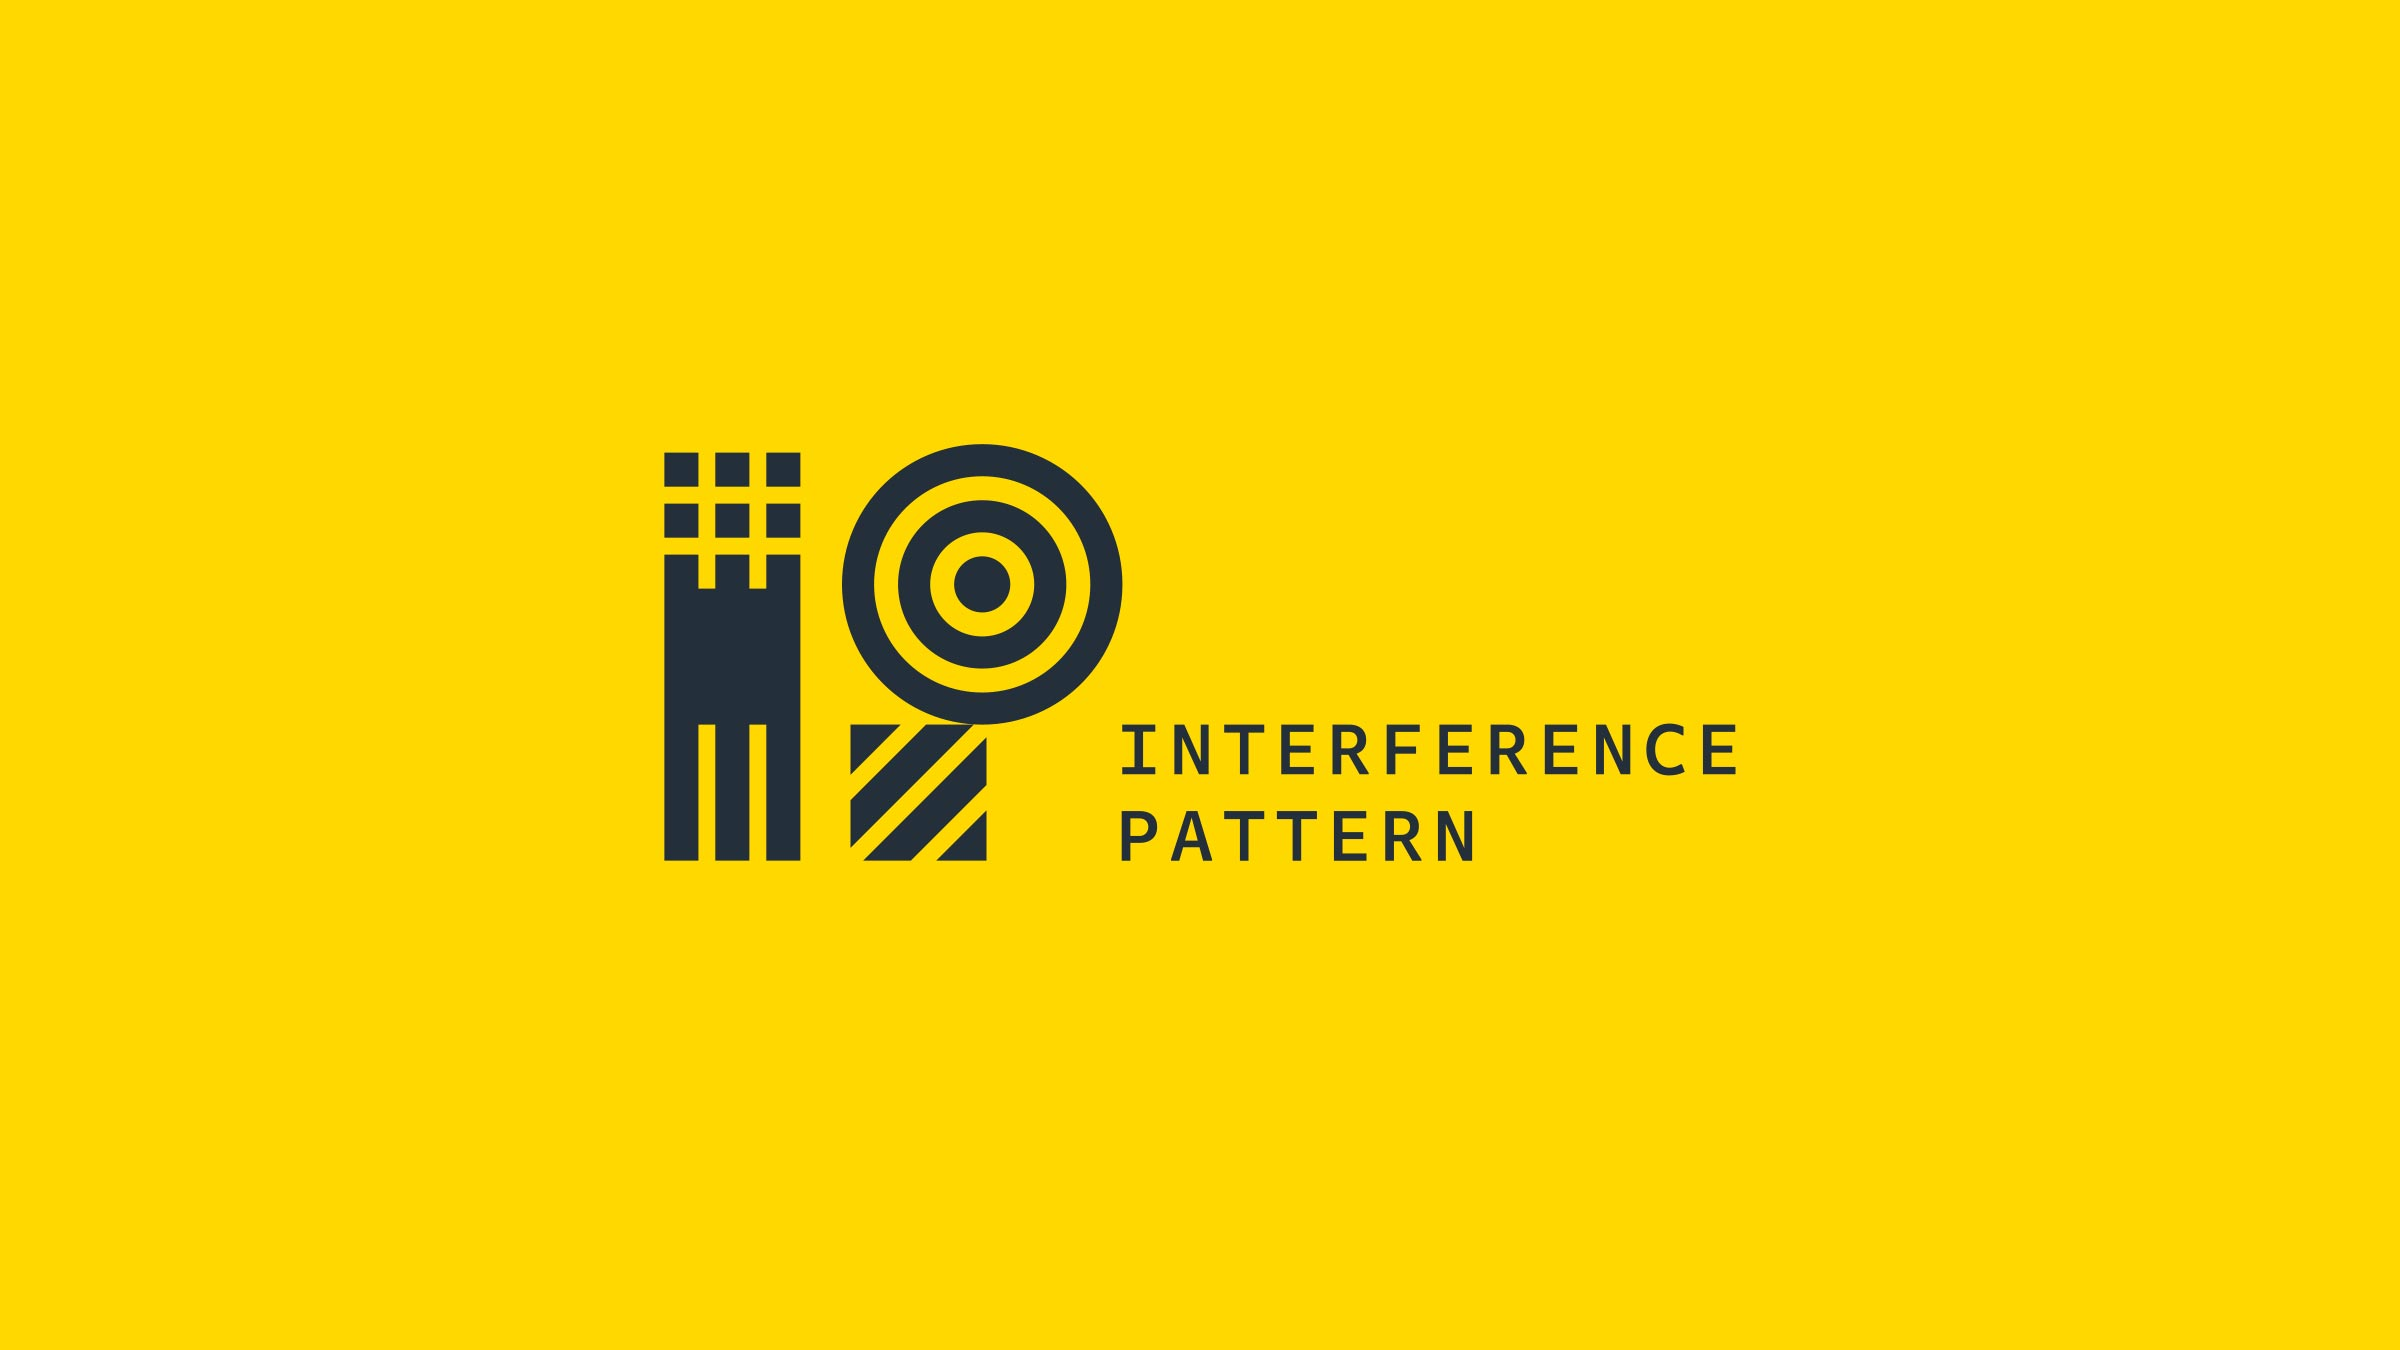 Interference Pattern branding and identity logo by Monumentum Brands